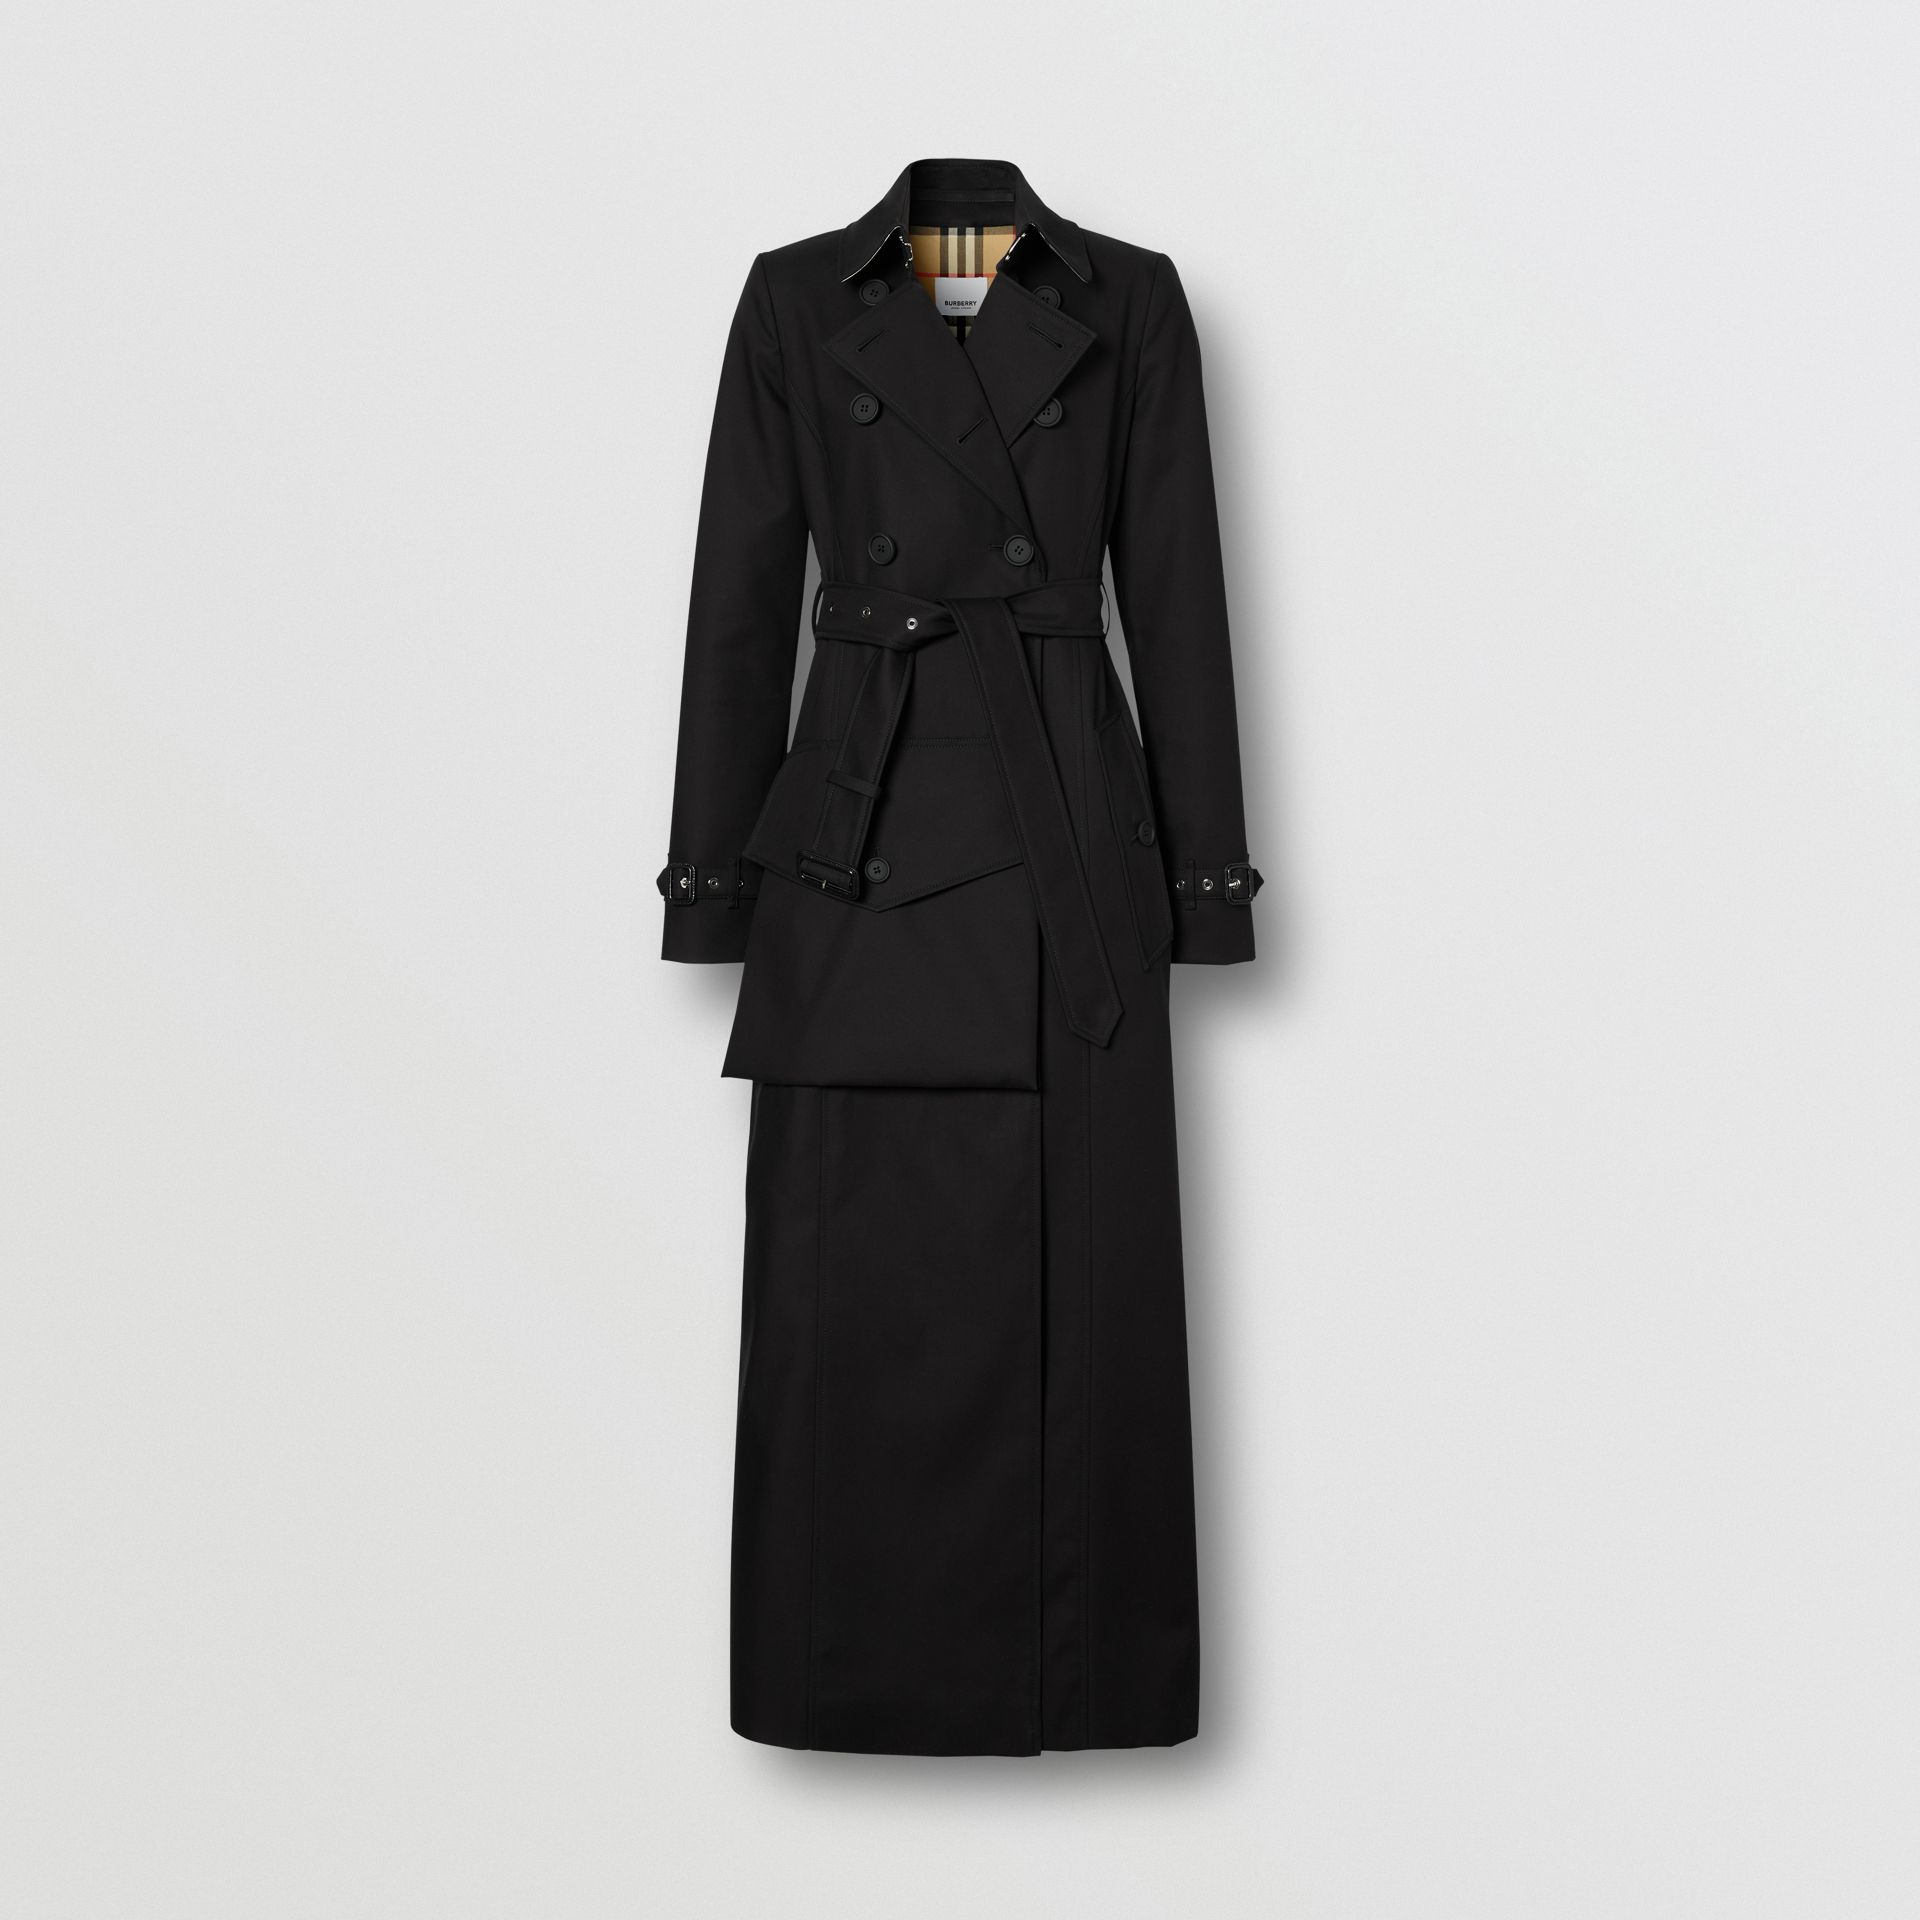 Pocket Detail Cotton Gabardine Trench Coat in Black - Women | Burberry - gallery image 3